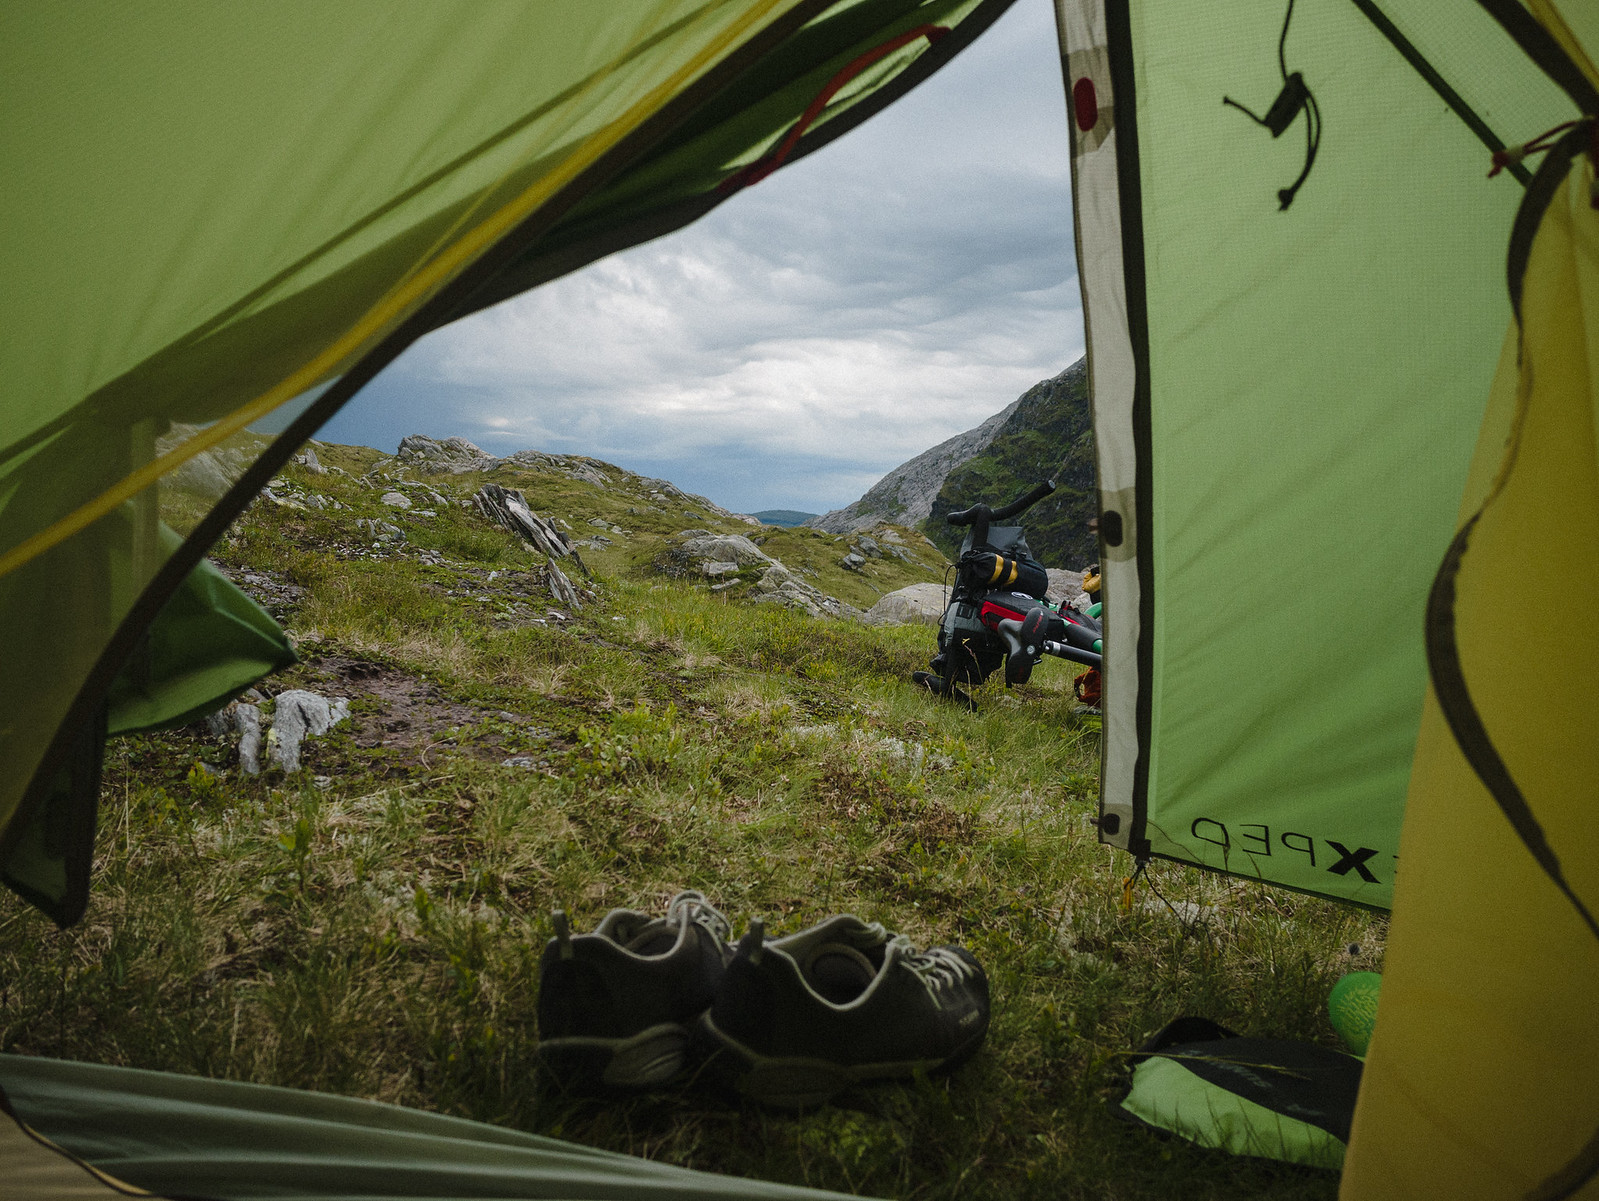 View out of a tent, mountain landscape, shoes and a touring bicycle.